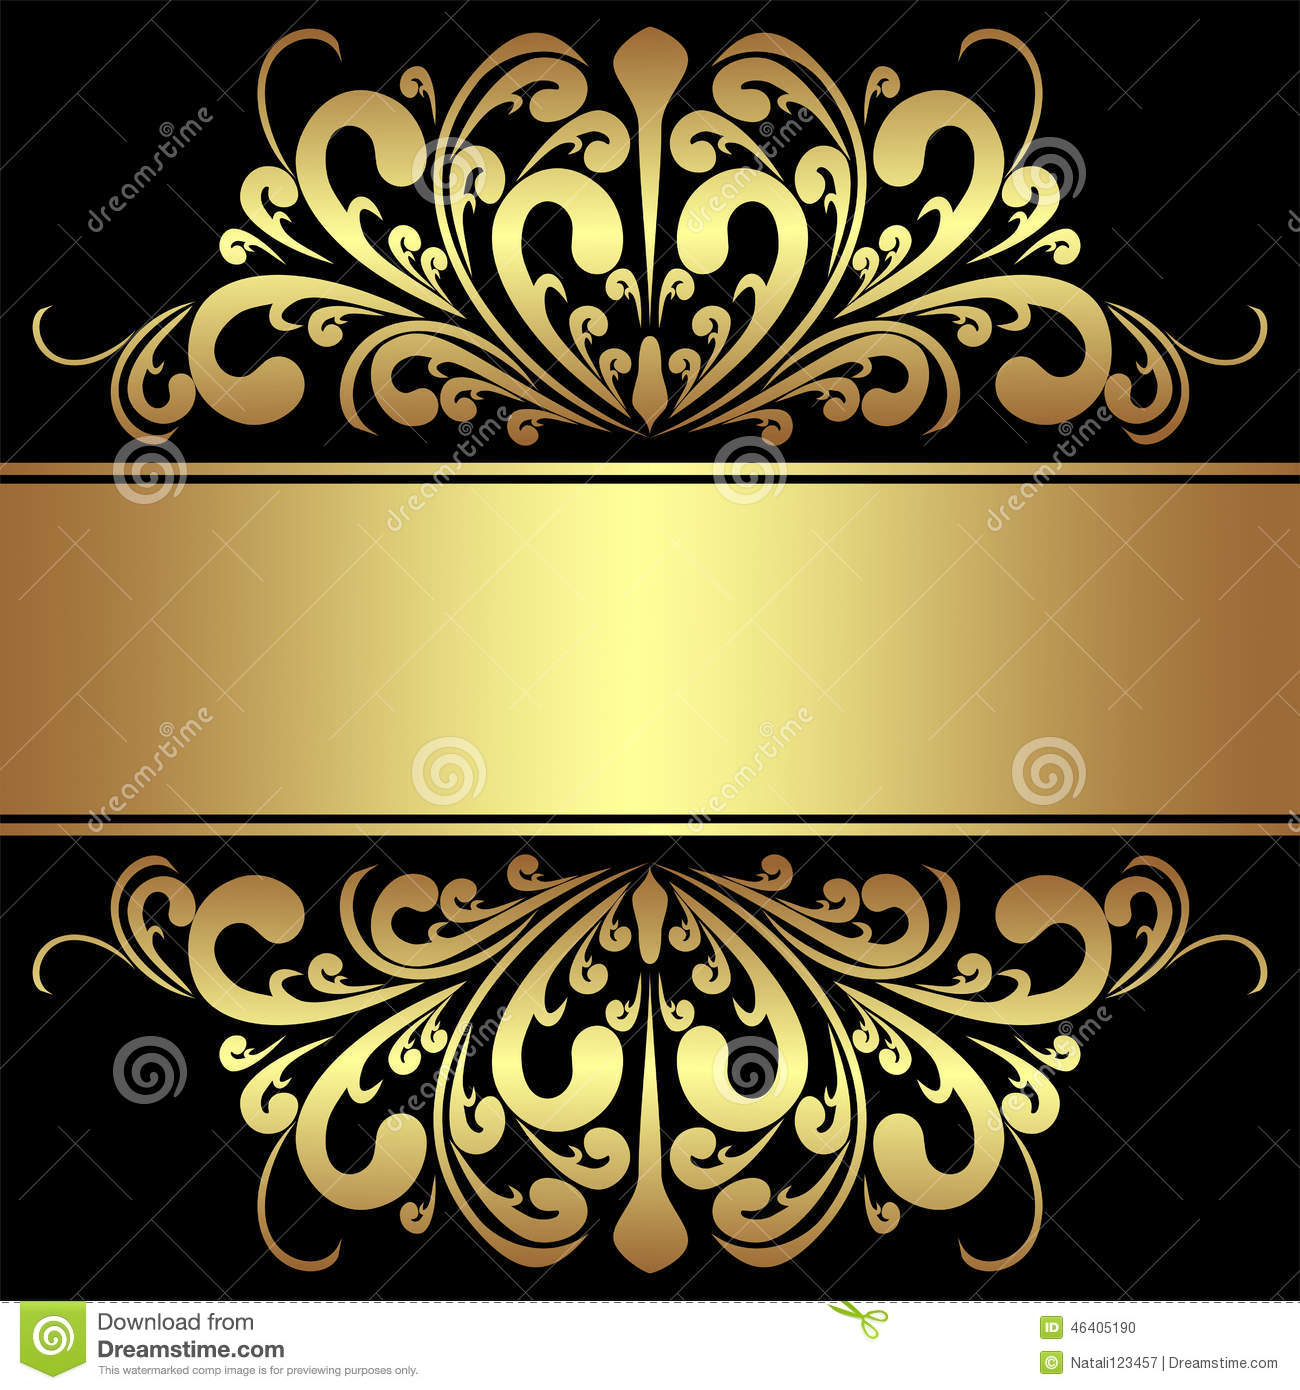 Islamic Wallpaper Hd 3d Elegant Background With Royal Golden Borders And Ribbon